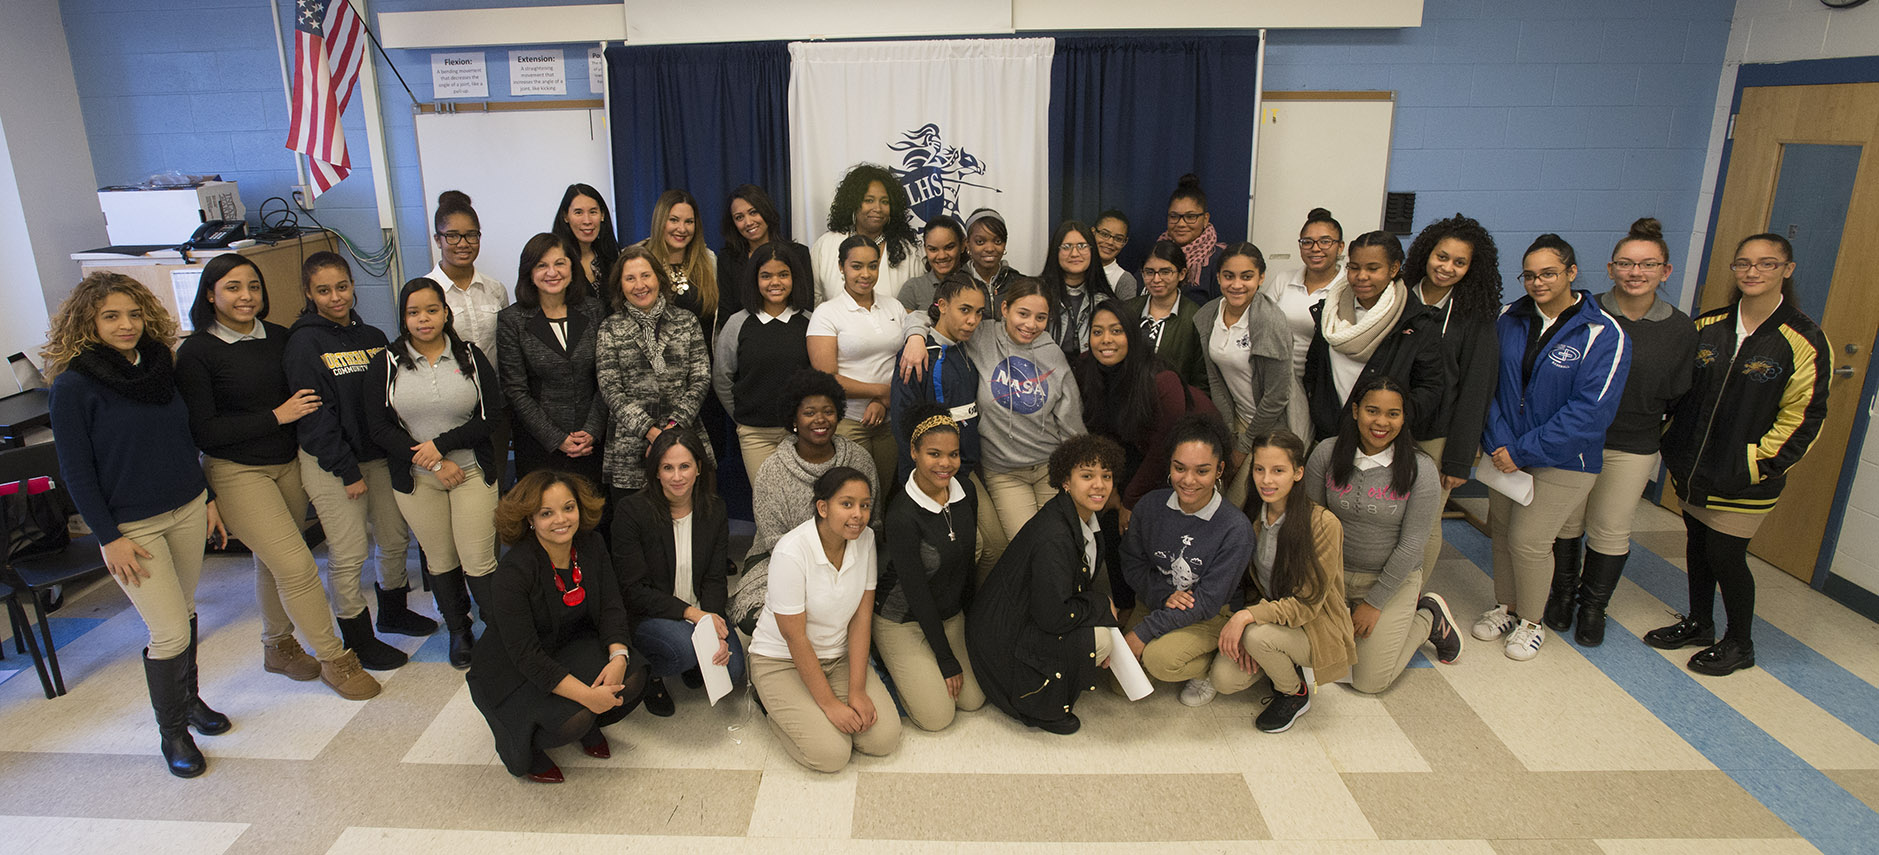 Group photo of students and leaders in Estrella Program